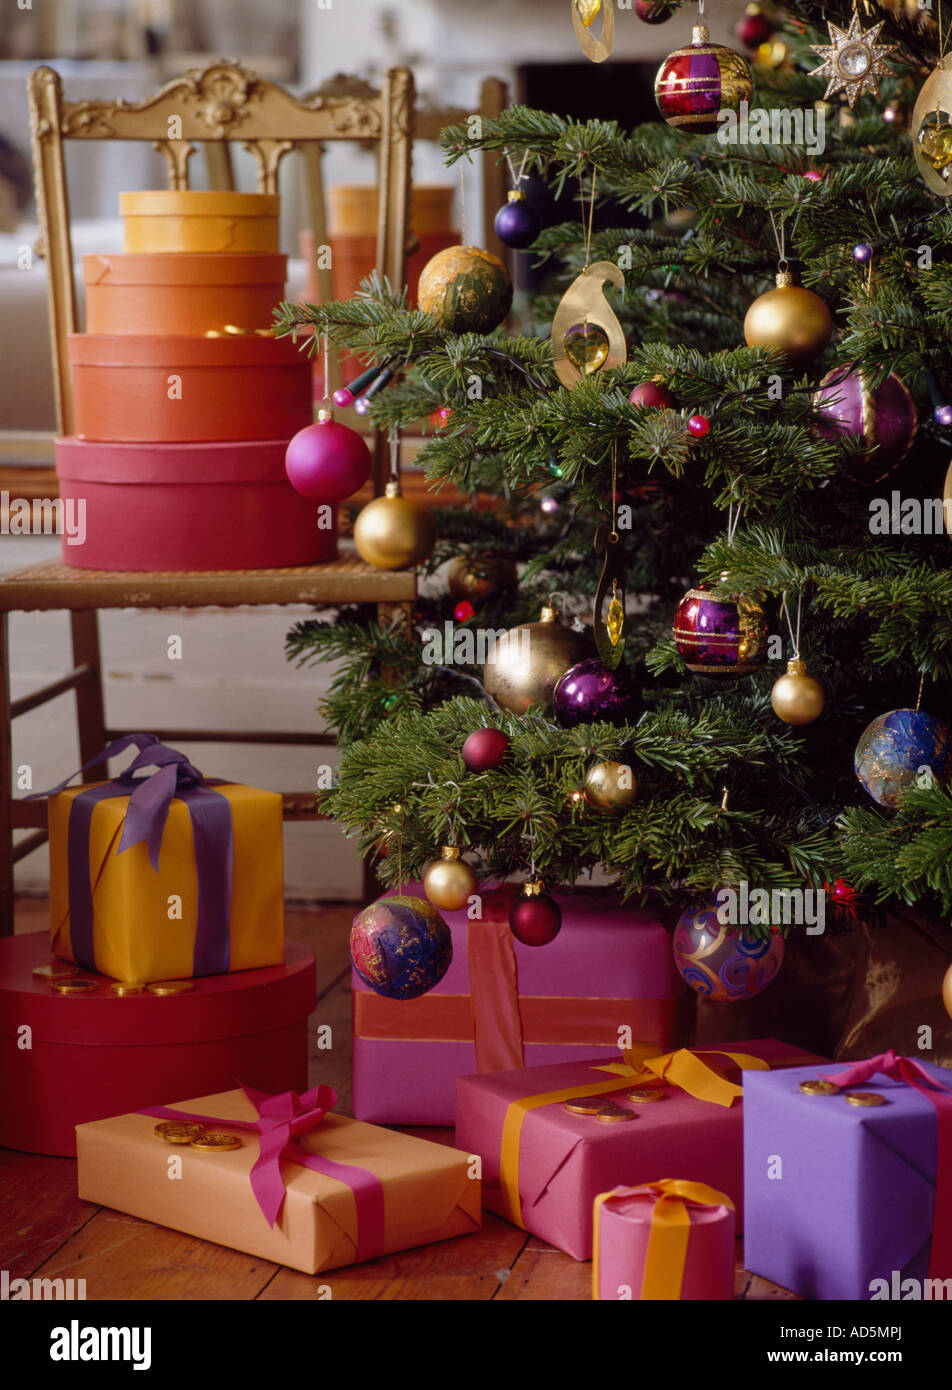 circular pink and oranges plywood boxes on chair beside decorated christmas tree with wrapped christmas presents beneath